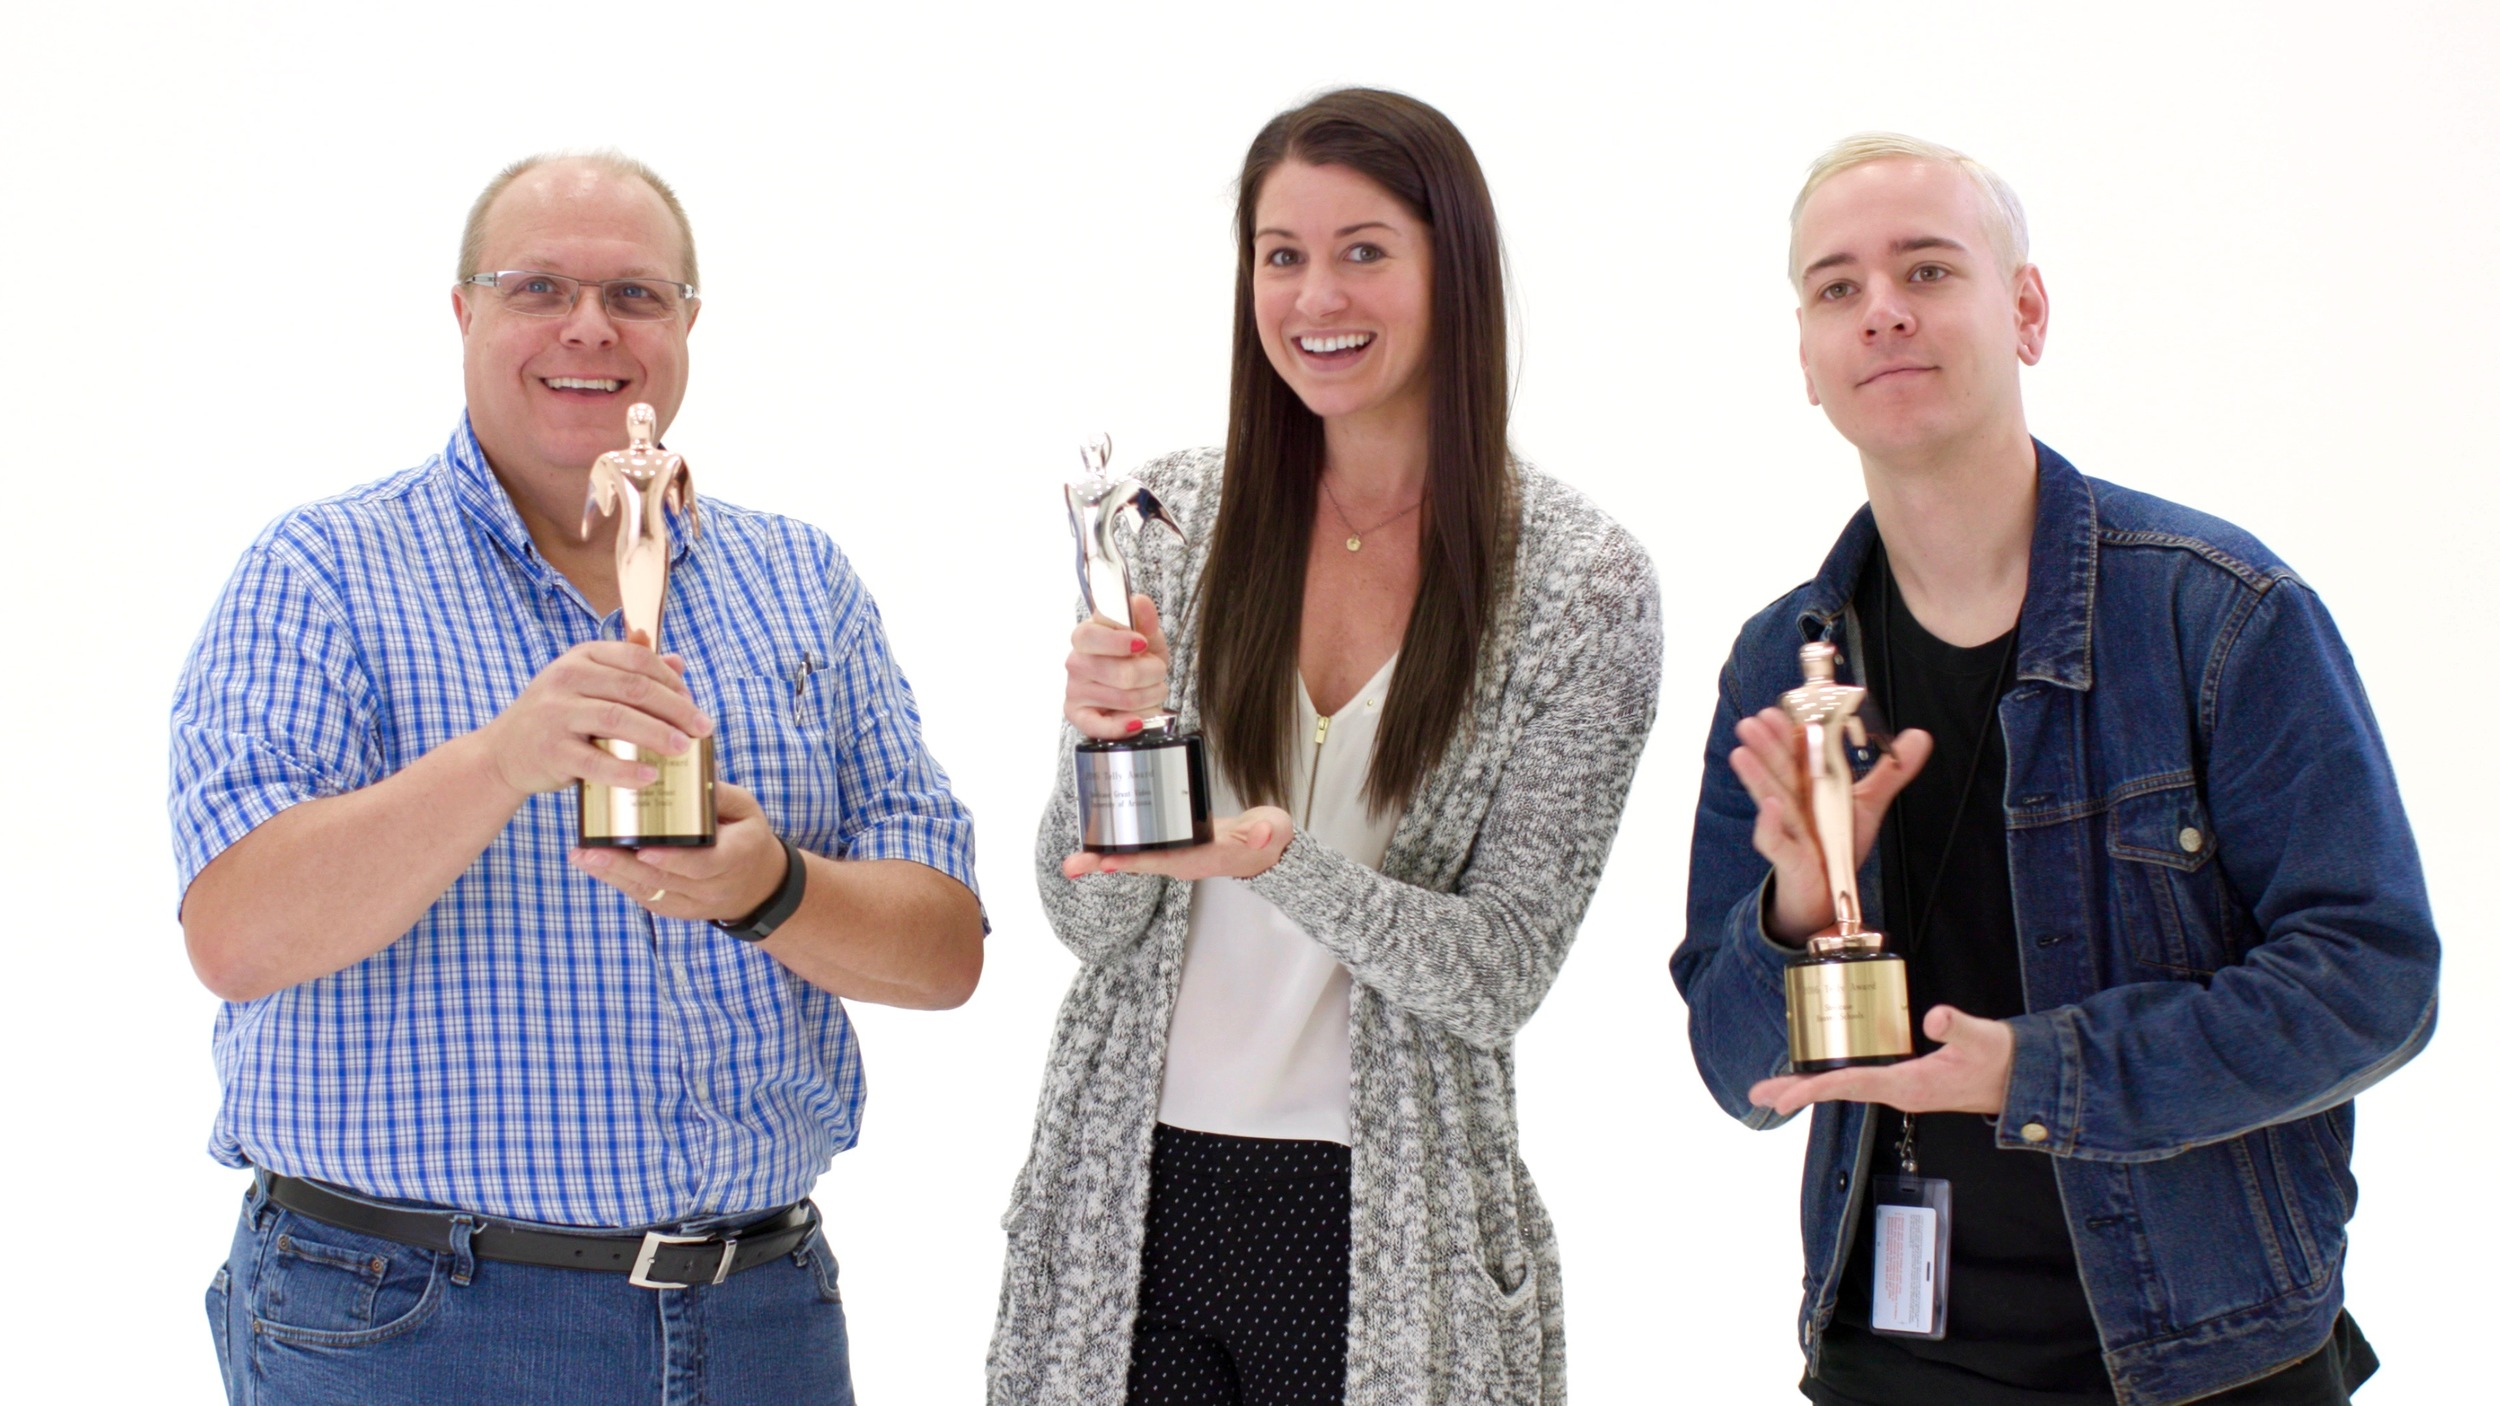 The Steelcase Video Team: Mark, Me, Kevin, with our Telly's; credit to partners Ideology.